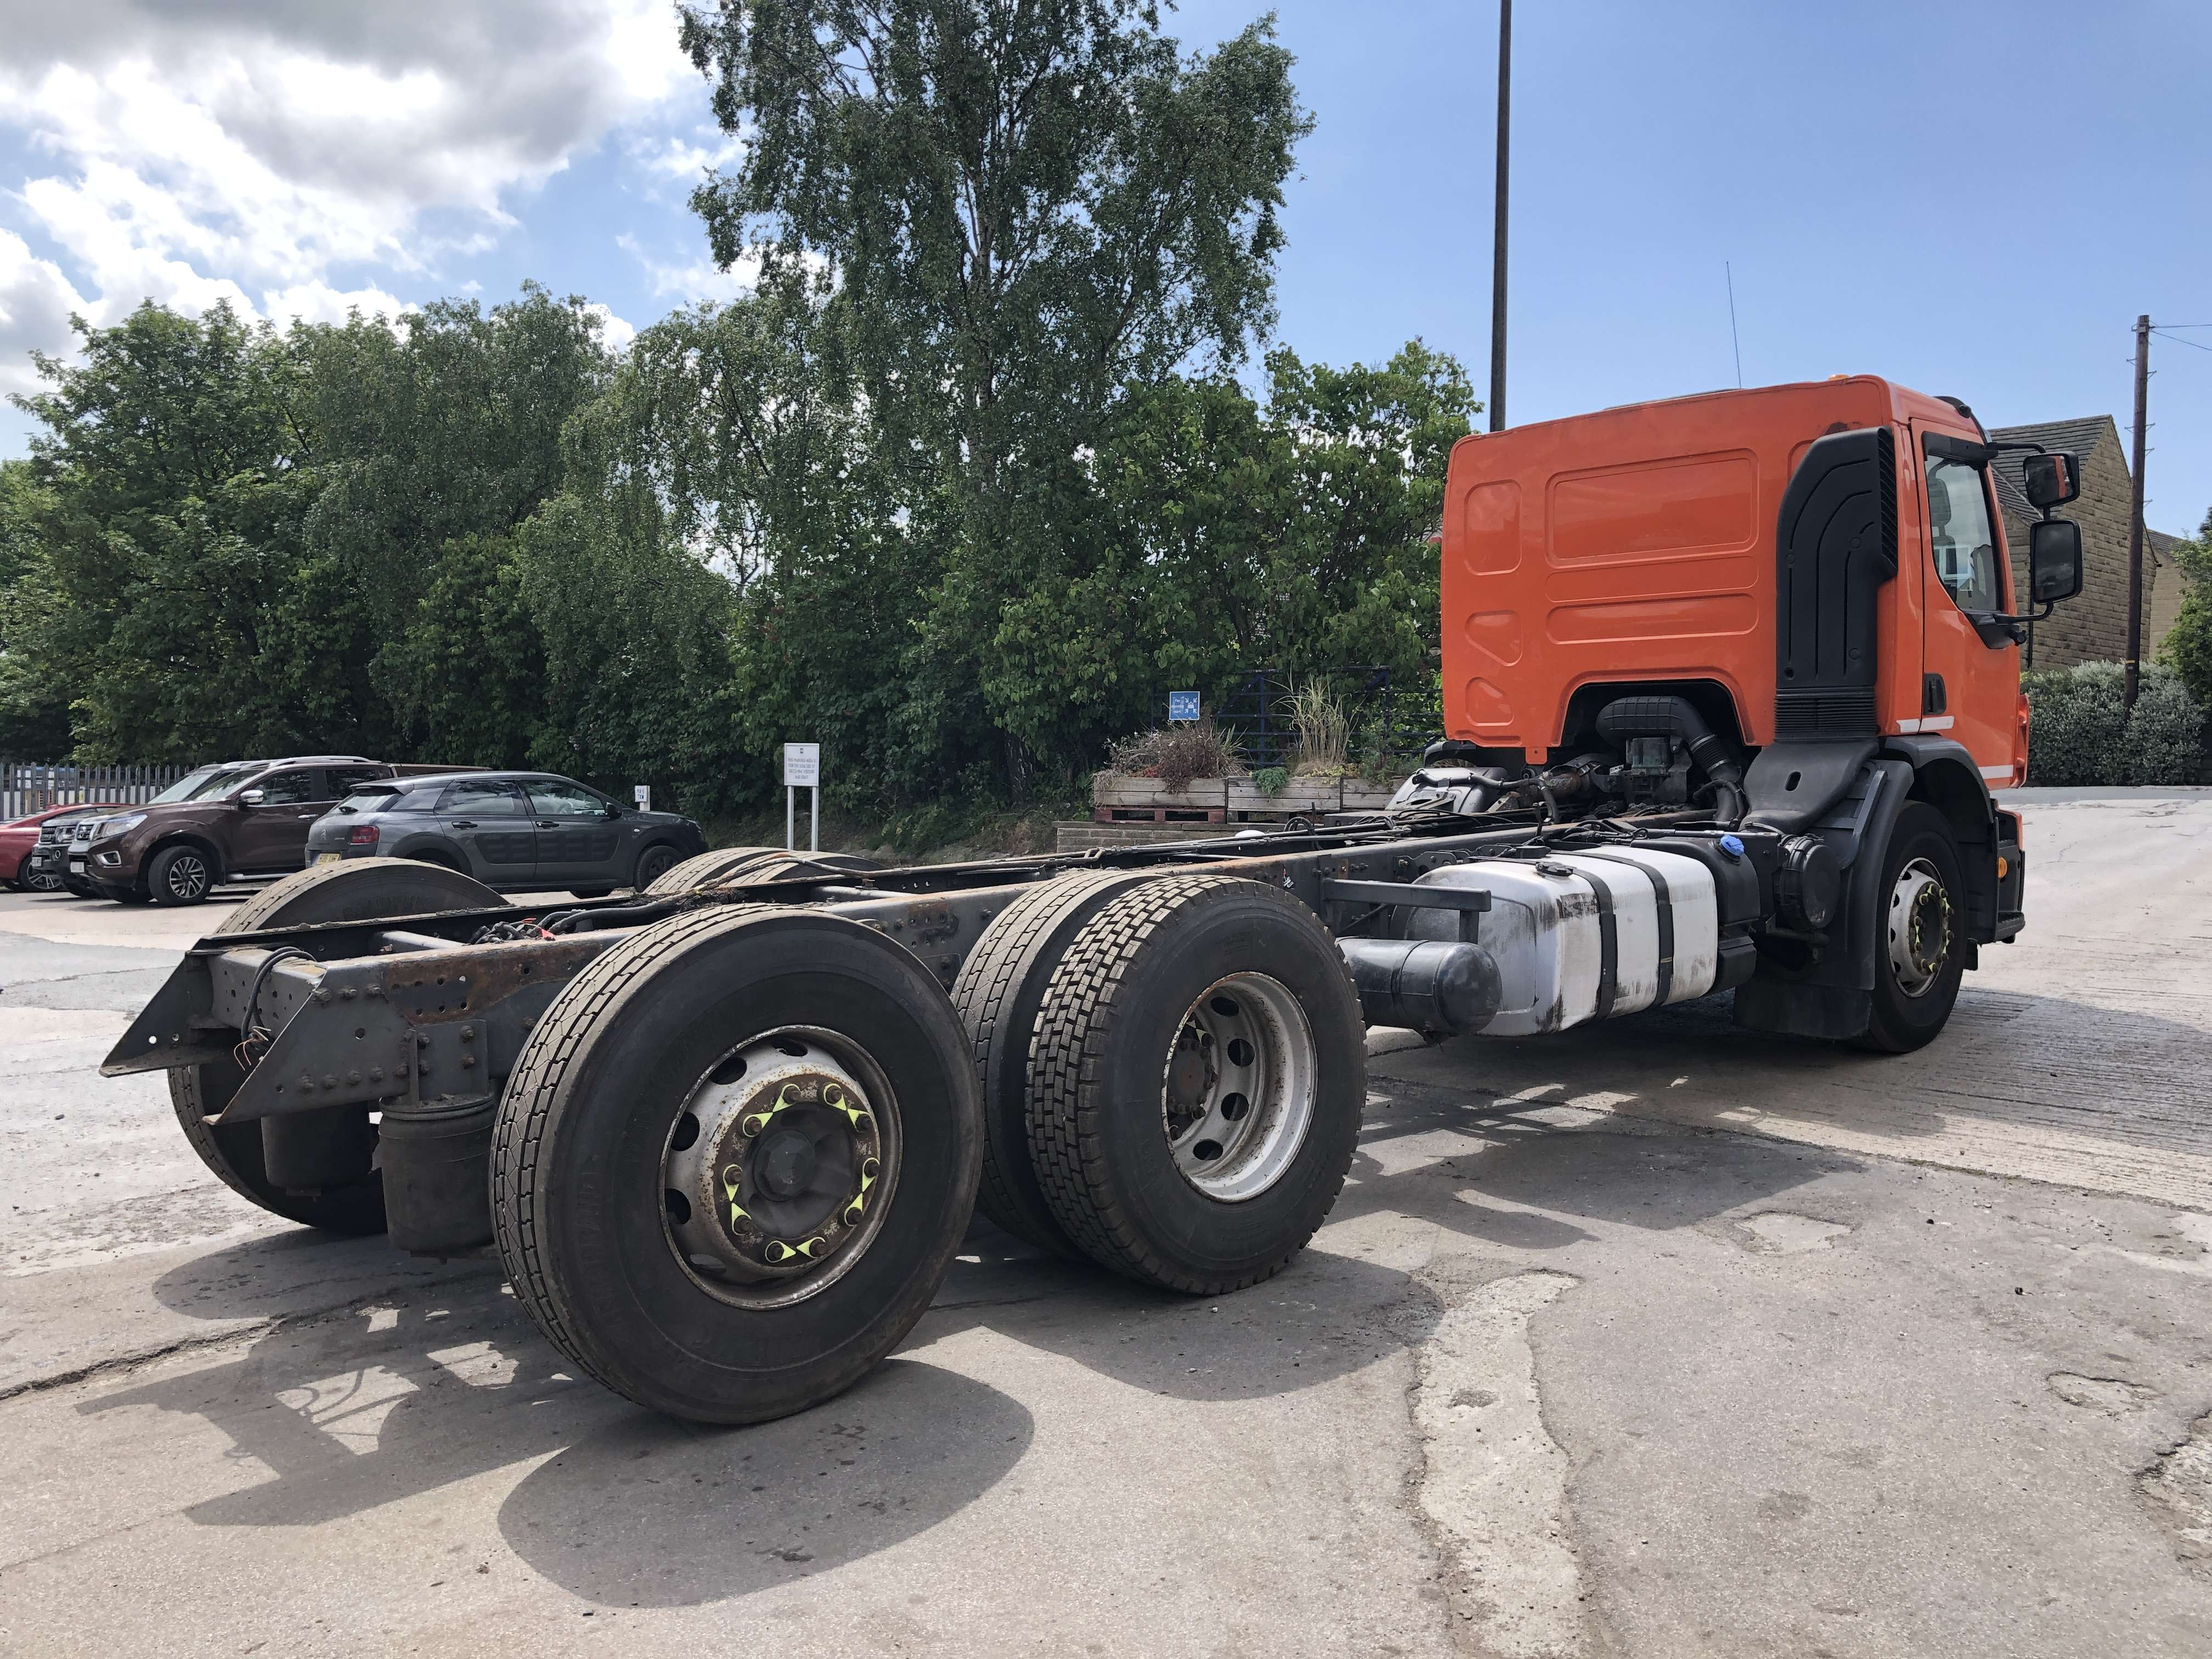 Volvo FE 260 6x2 rear steer chassis cab 4